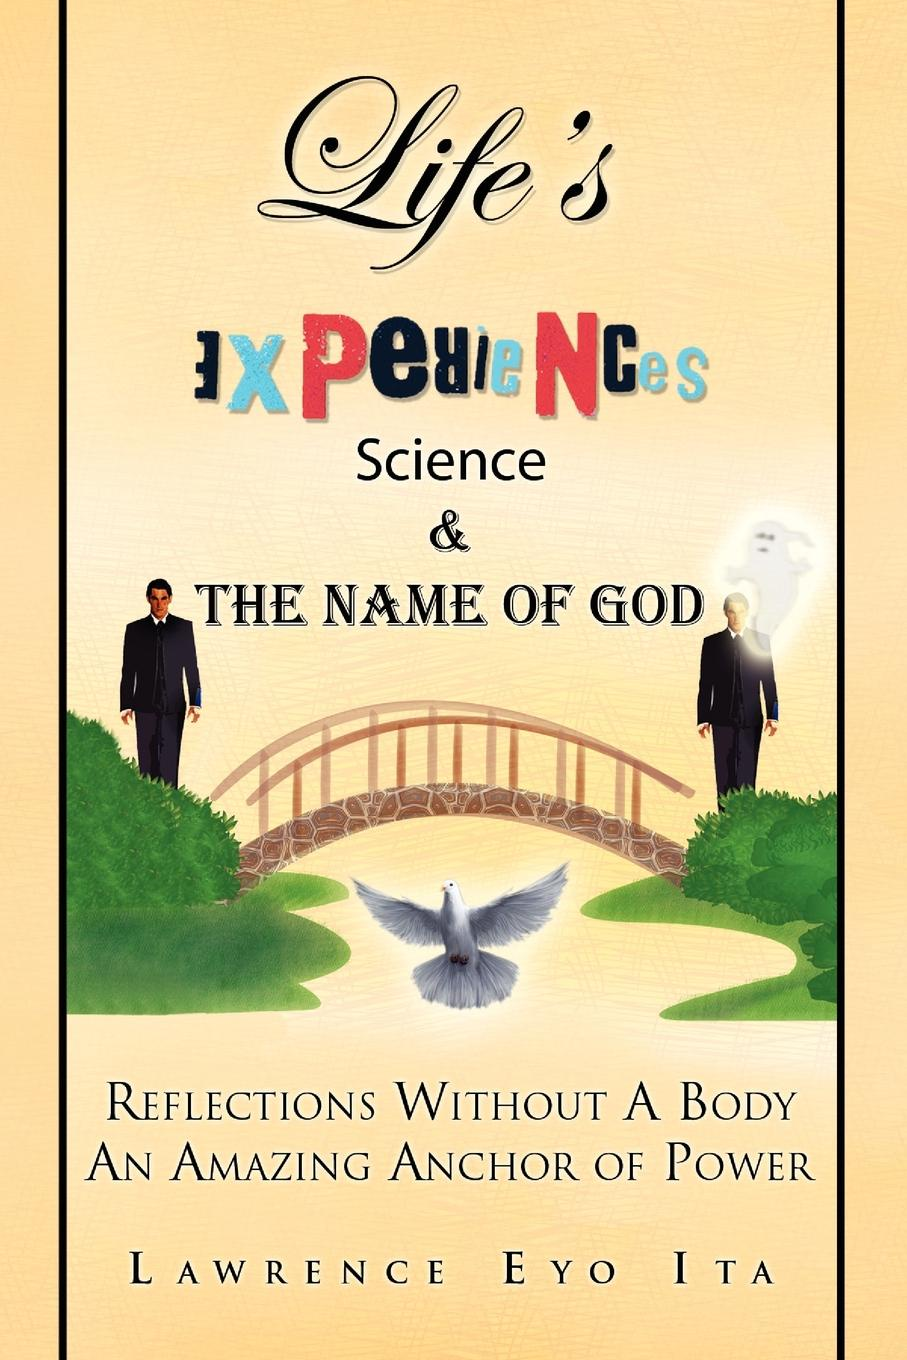 Lawrence Eyo Ita Life's Experiences Science & the Name of God dr g alfred palmer purposeology the science of purpose series what s in a name the science of onomatology